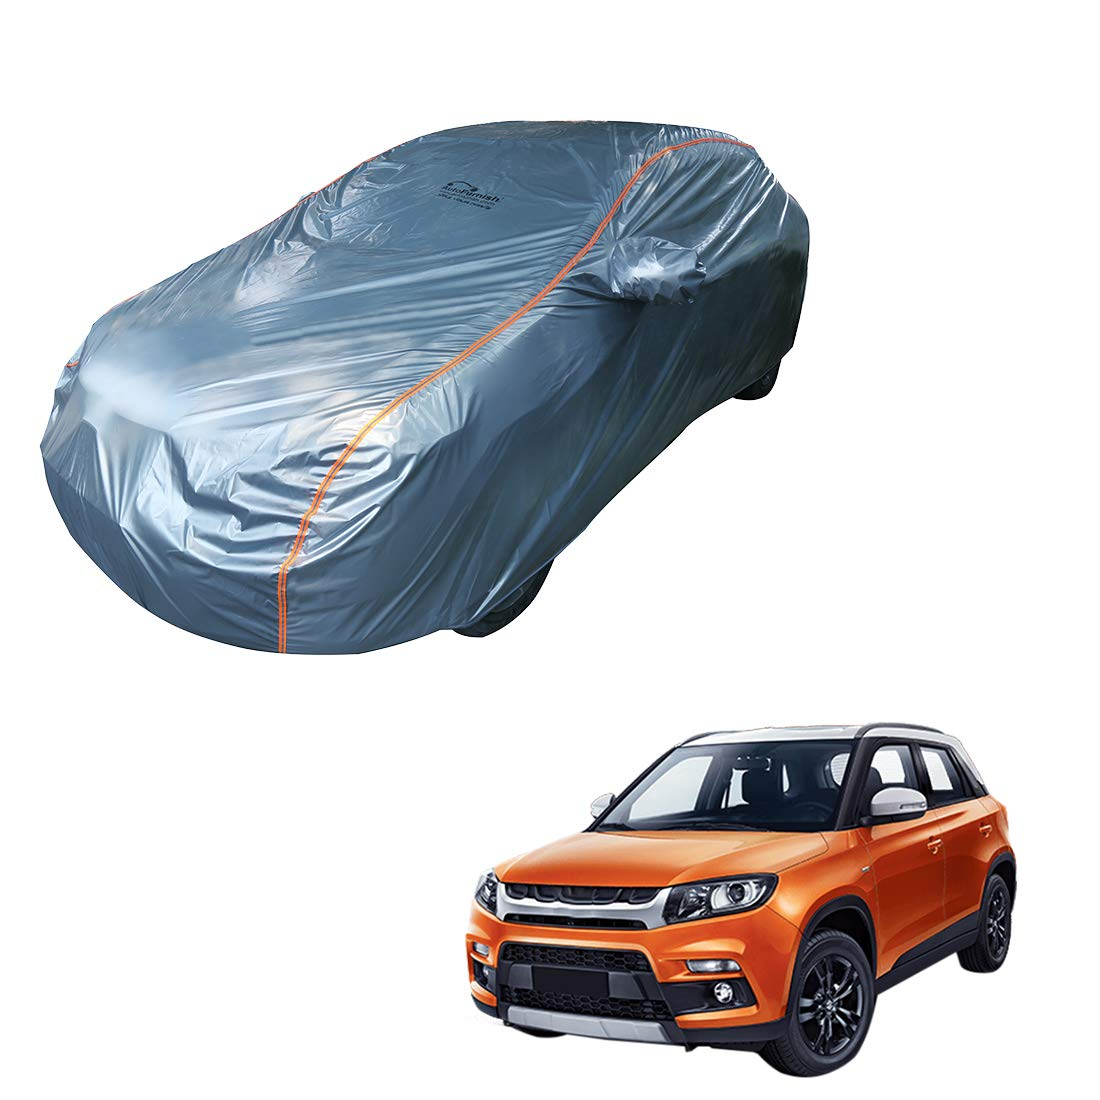 S- tech automotive Vitara All Models Seat Covers//Protectors 1+1 | Water Resistant Front Grey Heavy Duty